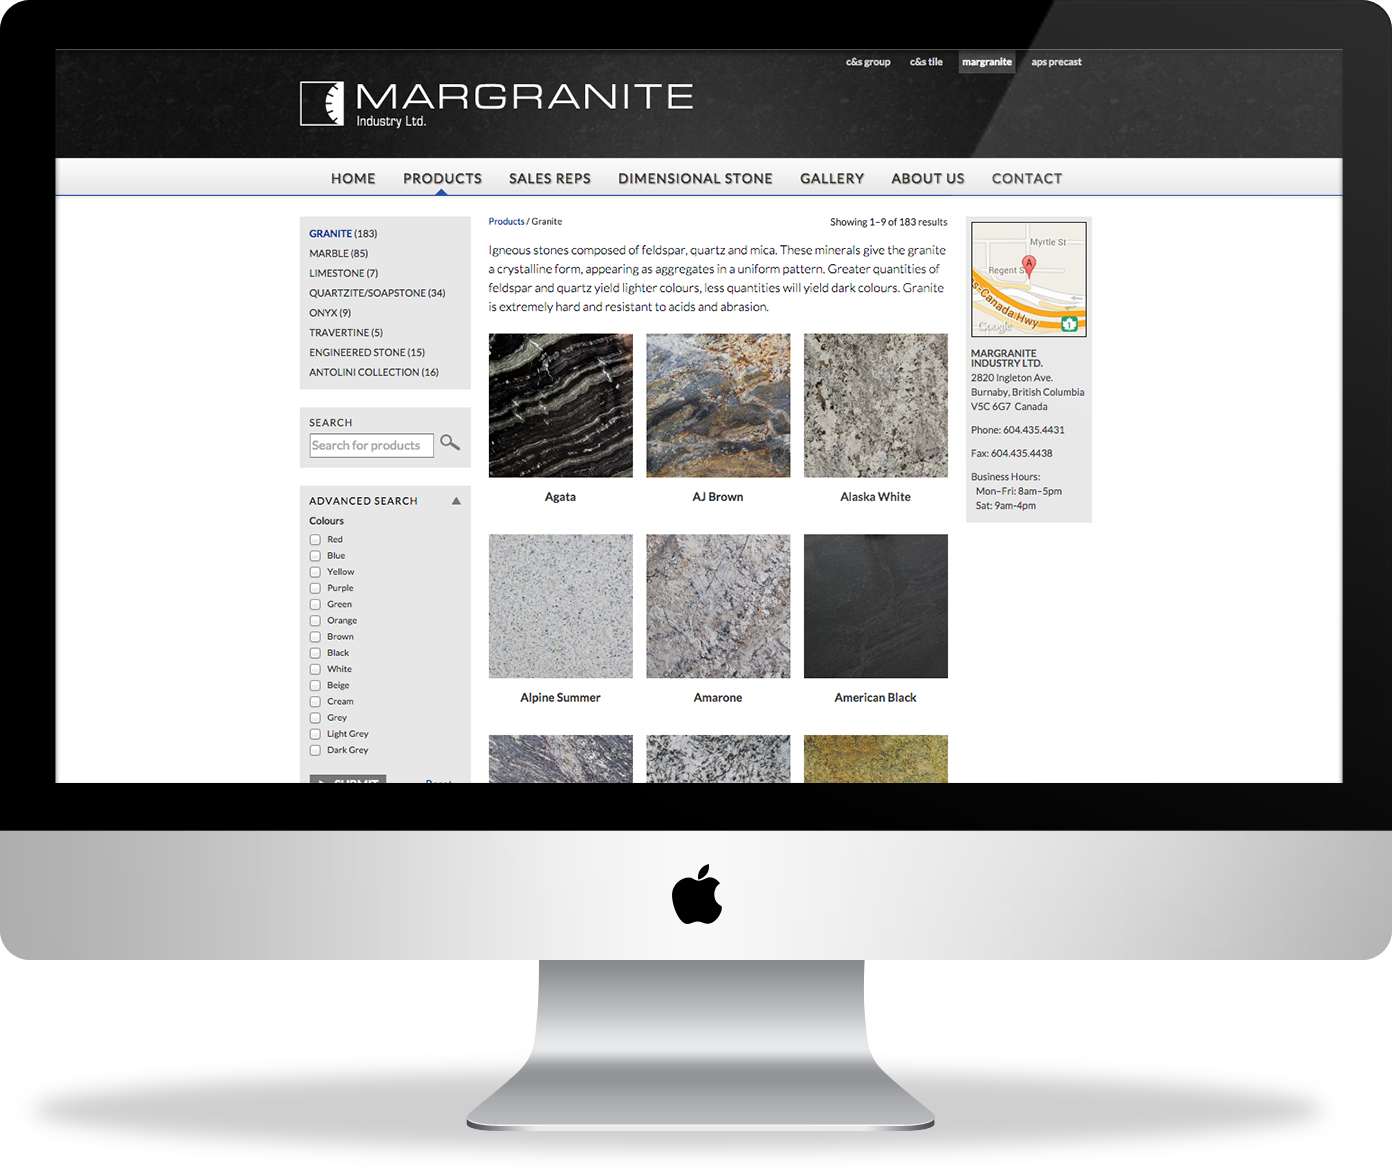 Margranite website